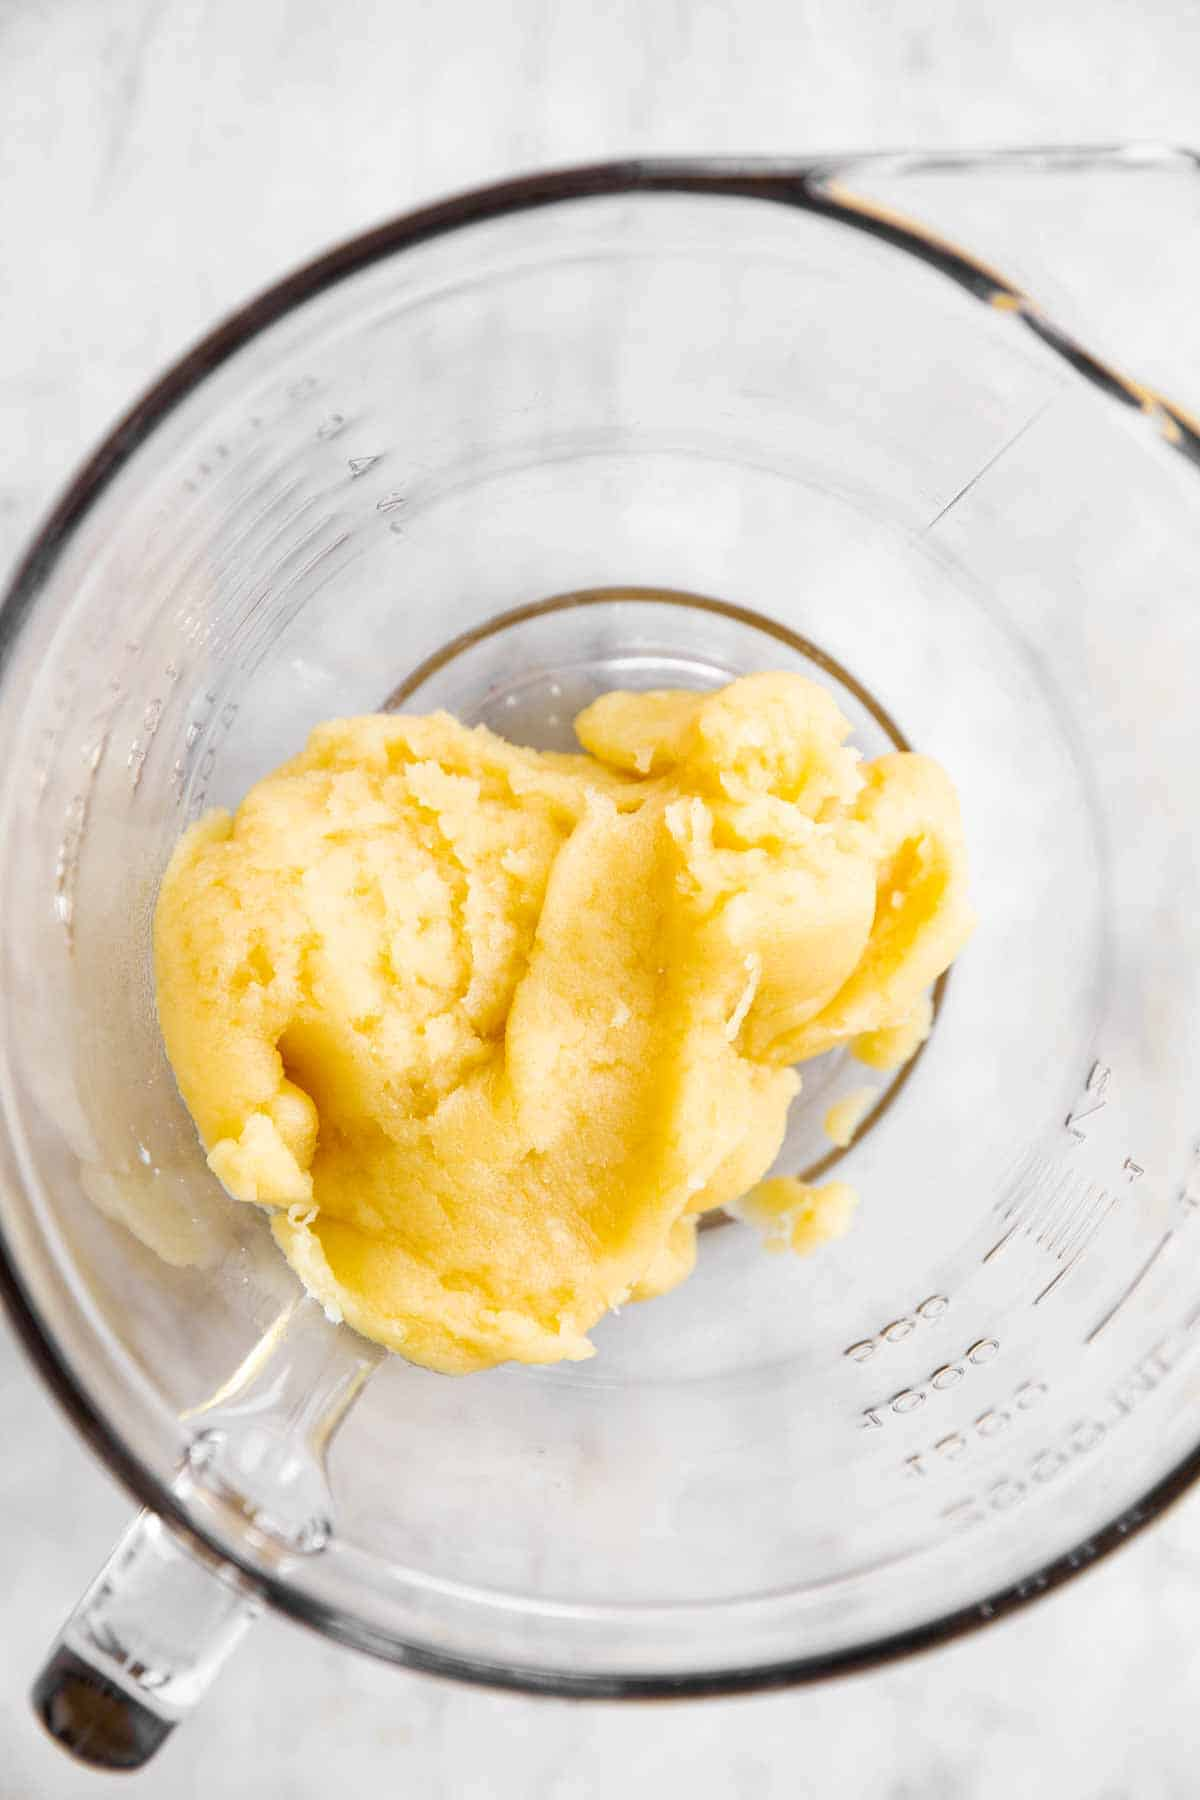 choux pastry in glass bowl